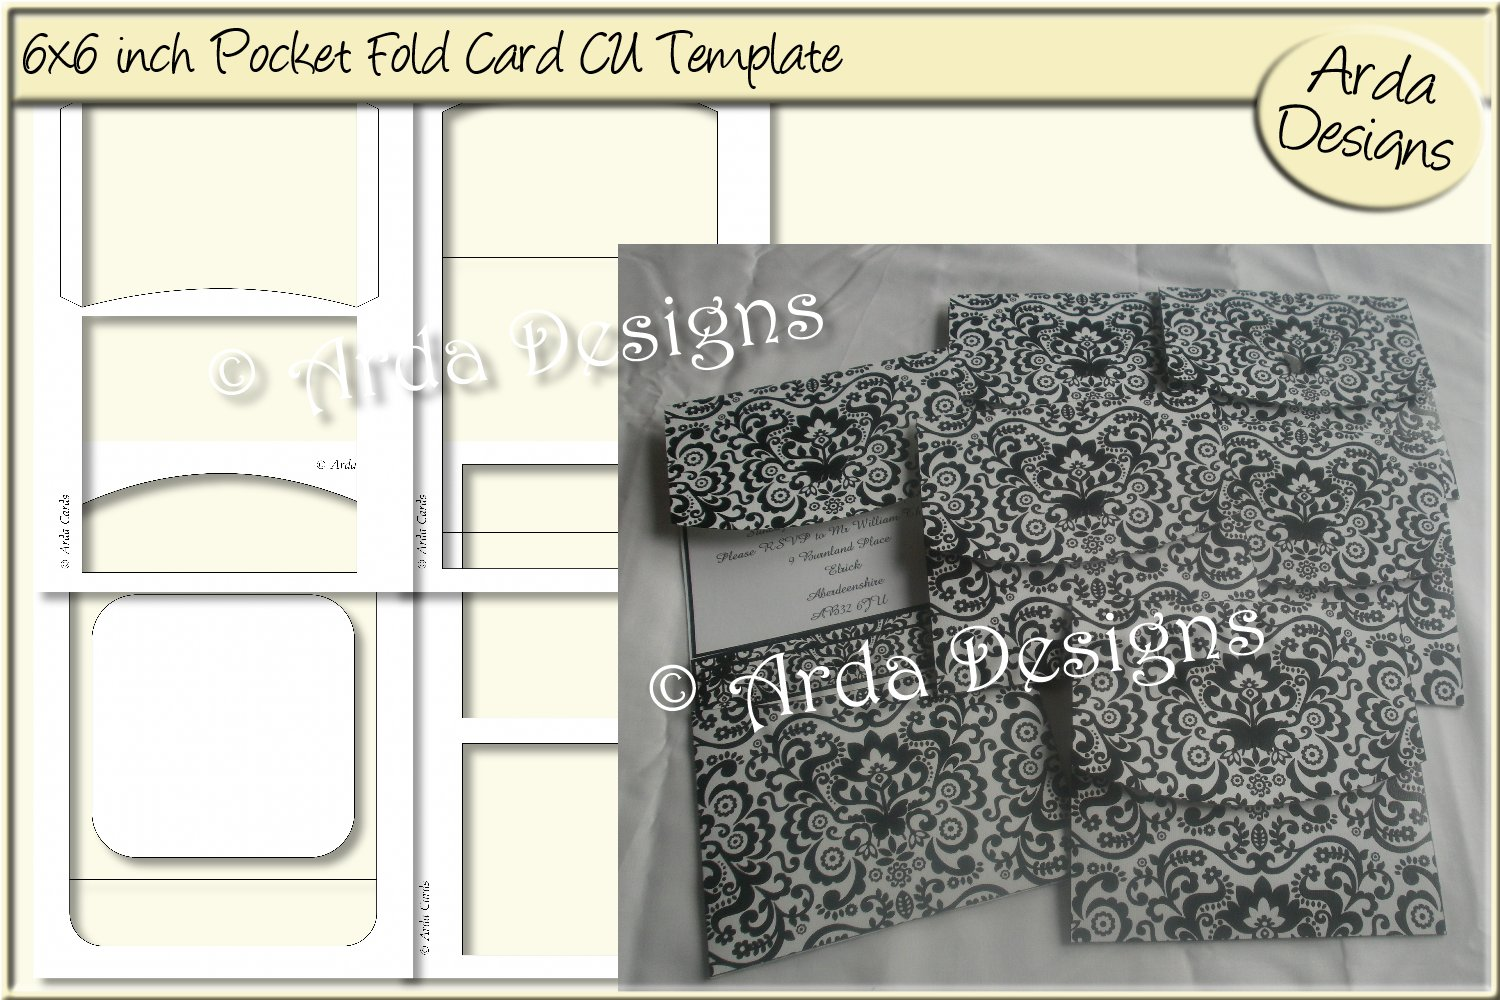 Download Free Pocketfold Card Cu Template Graphic By Arda Designs Creative Fabrica for Cricut Explore, Silhouette and other cutting machines.